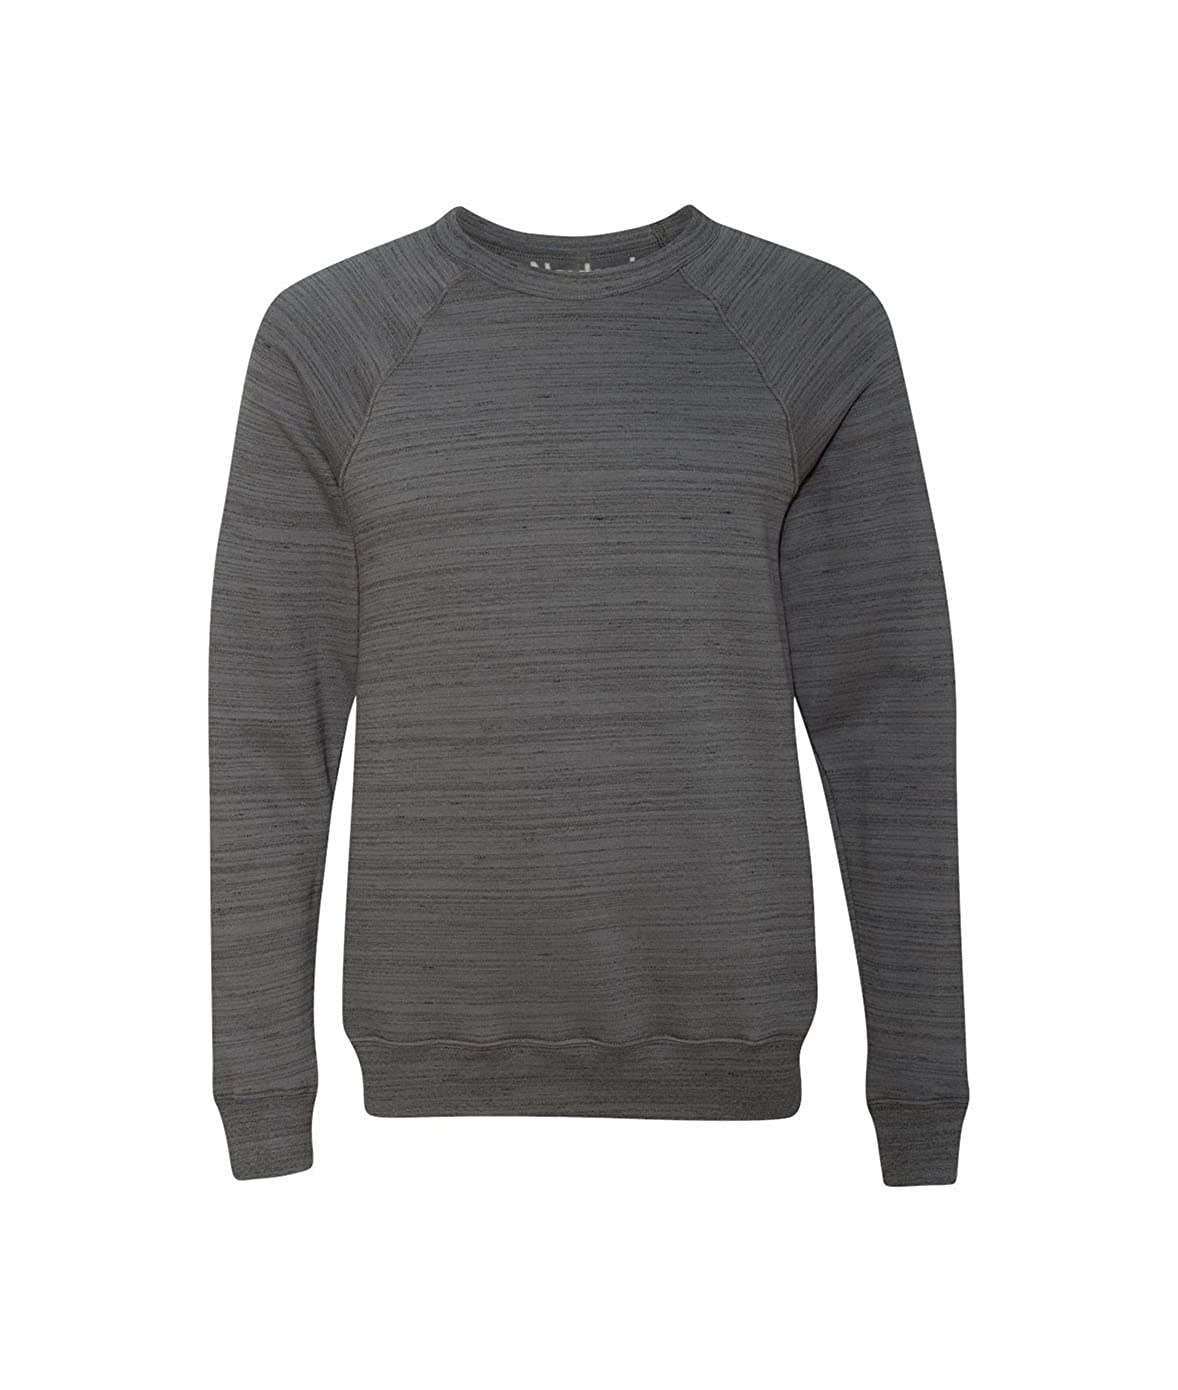 Nayked Apparel Mens Ridiculously Soft Sweatshirt